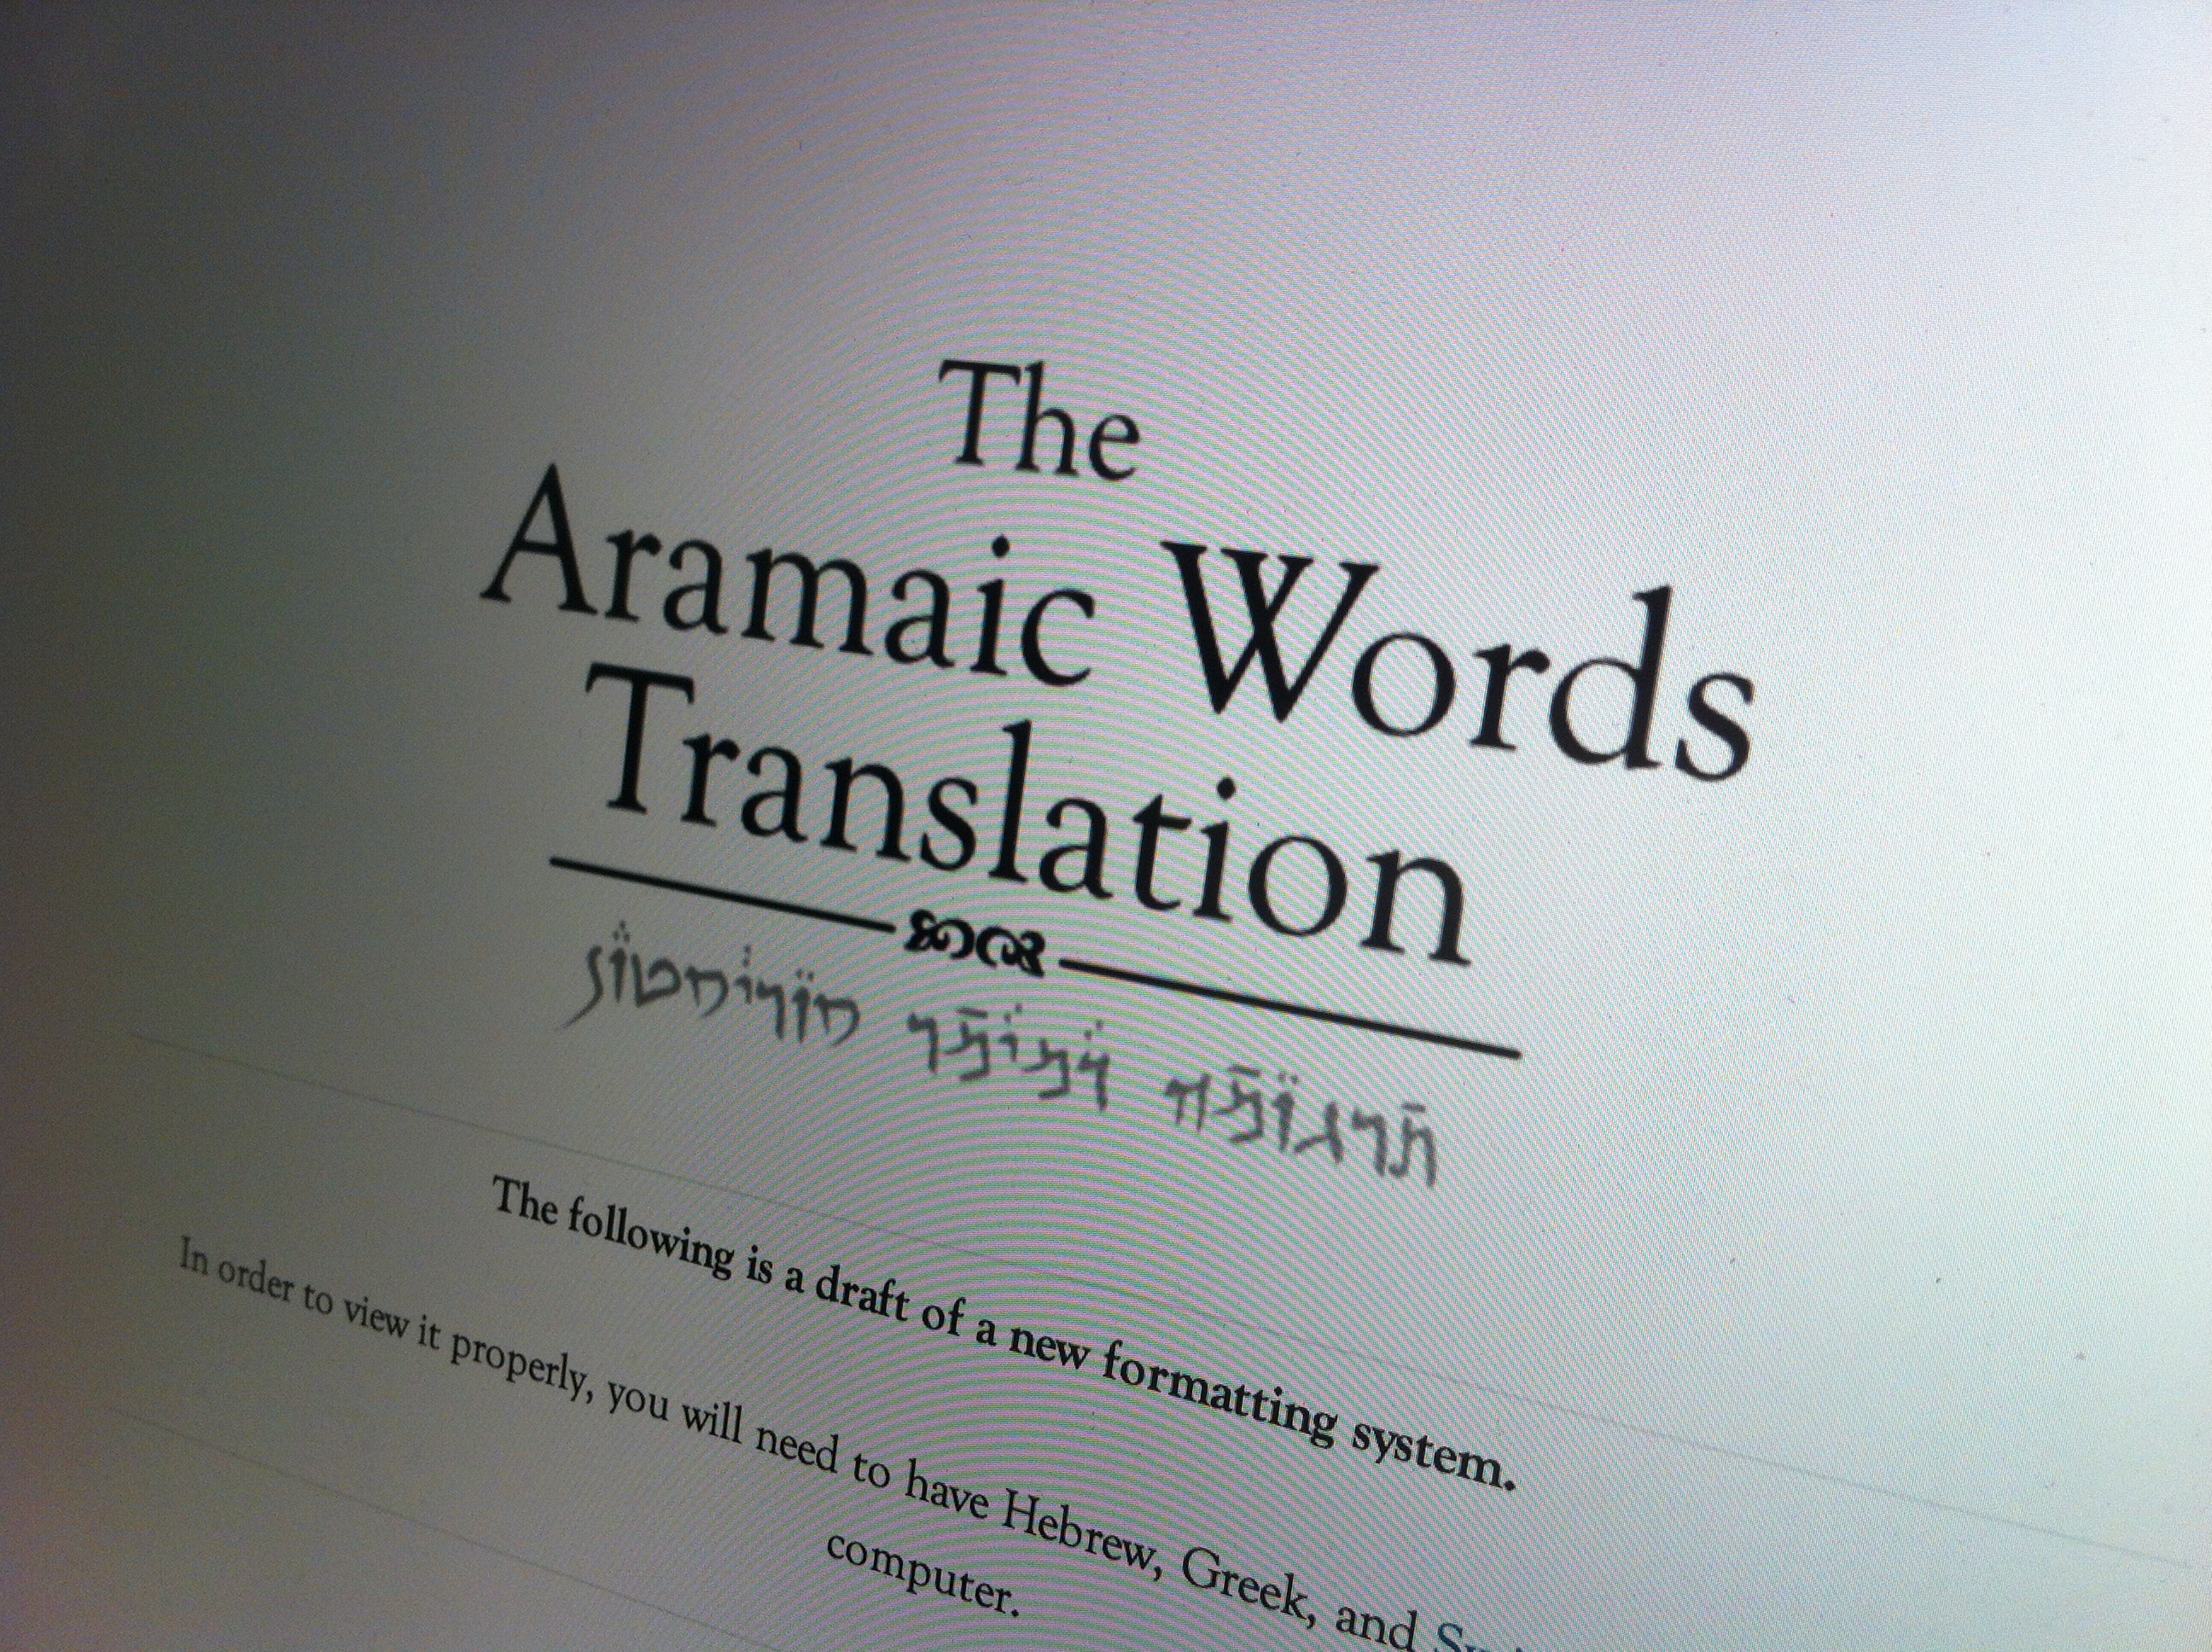 aramaean aramaic background collected essay new semitic testament wandering New testament scholars have for years translated the greek ebraios into aramaic when it appears in the nt instead of hebrew they do this because the prevailing theory for many years was that hebrew was only used by religious people and scholars.